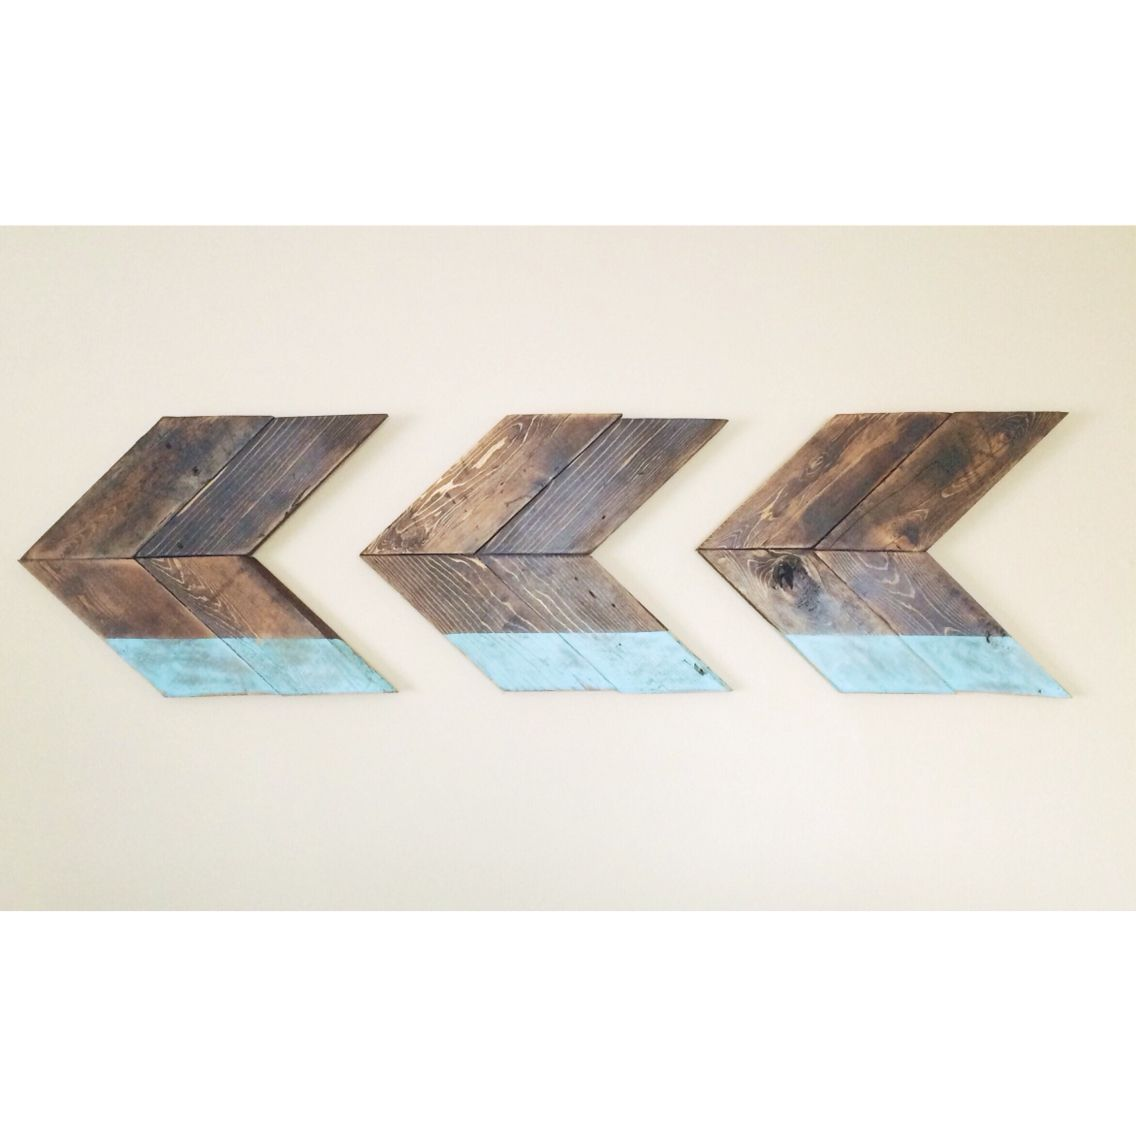 Rustic duck egg blue dipped wooden chevron wall hanging arrow art